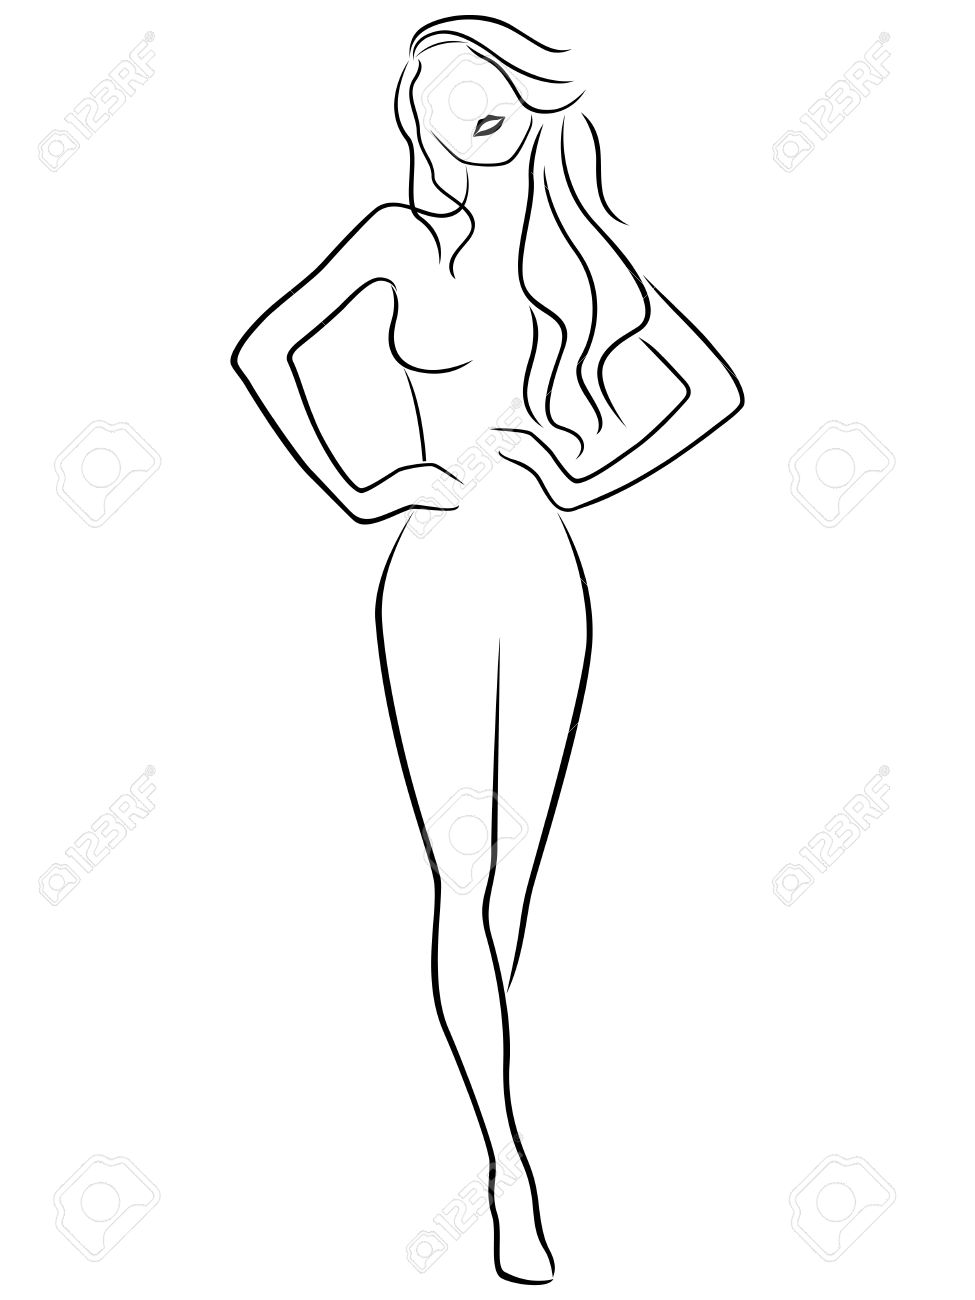 Person Drawing Outline